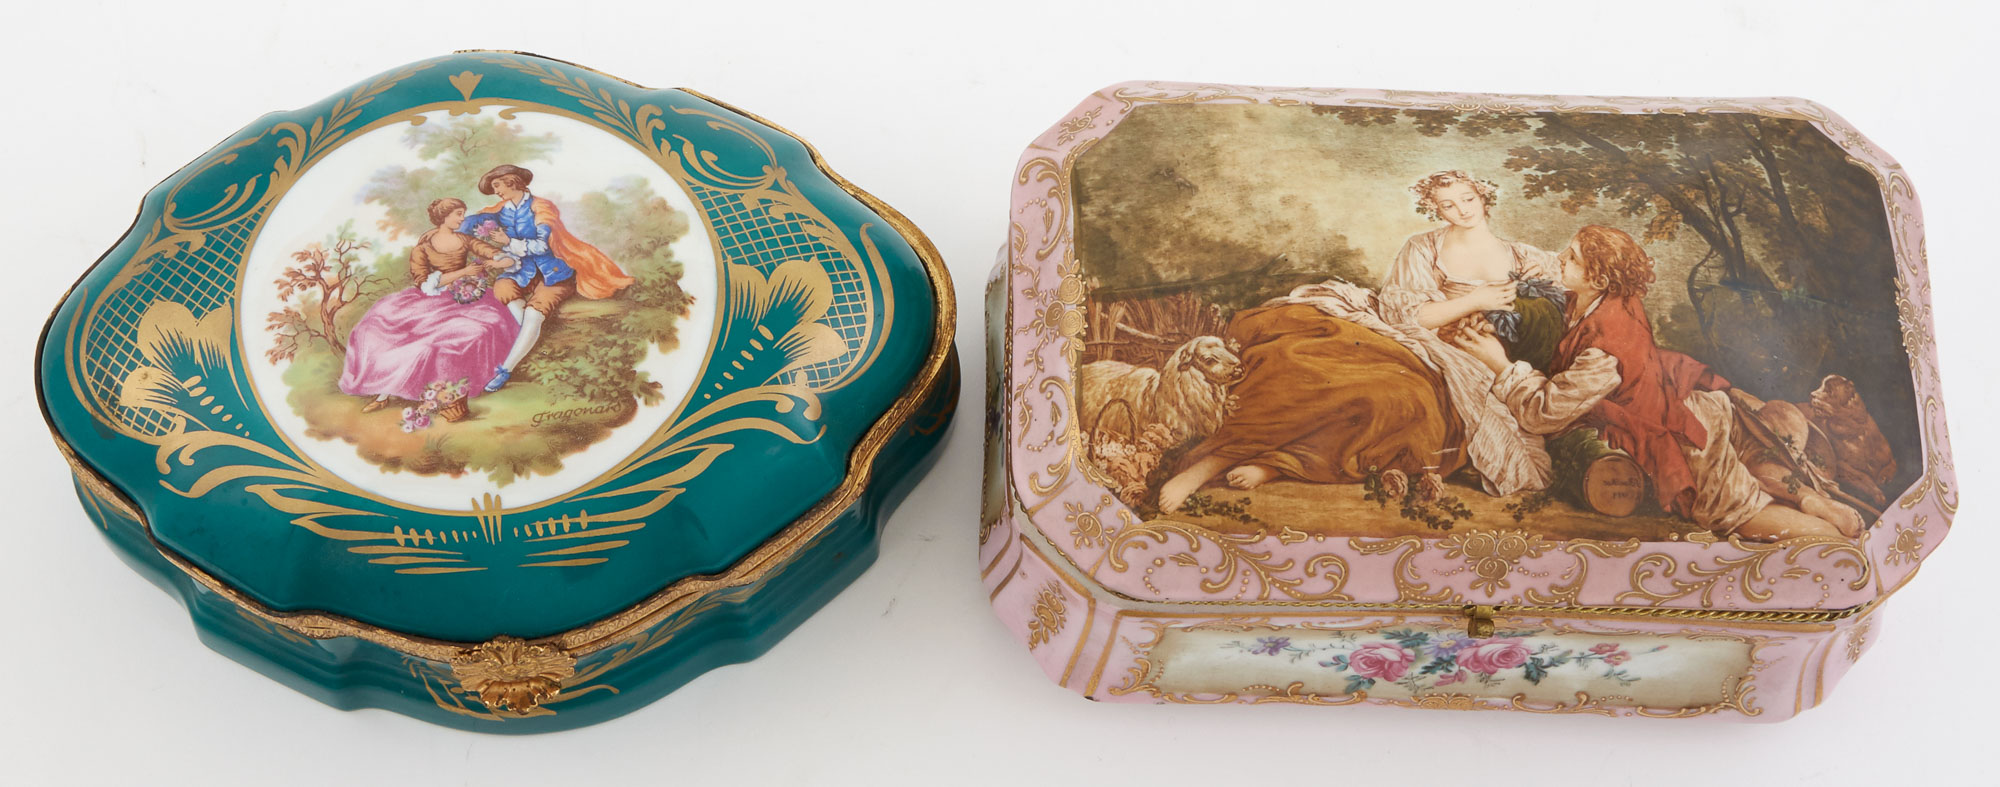 Lot image - Two Sèvres Style Gilt-Metal Mounted Transfer Print Decorated Porcelain Boxes